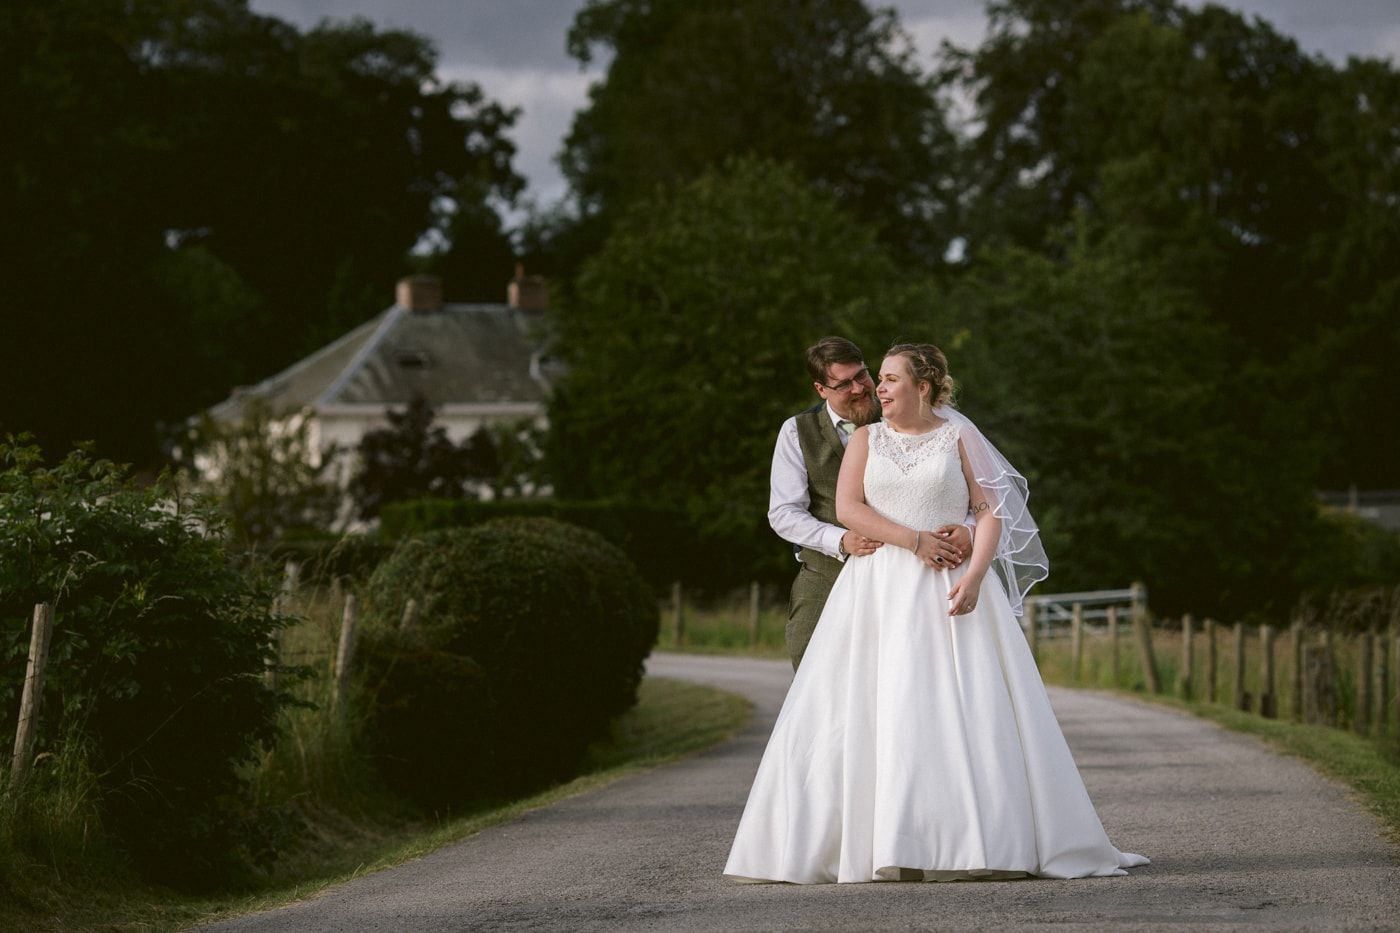 Bride and Groom Embraced Together at Roundthorn Country House